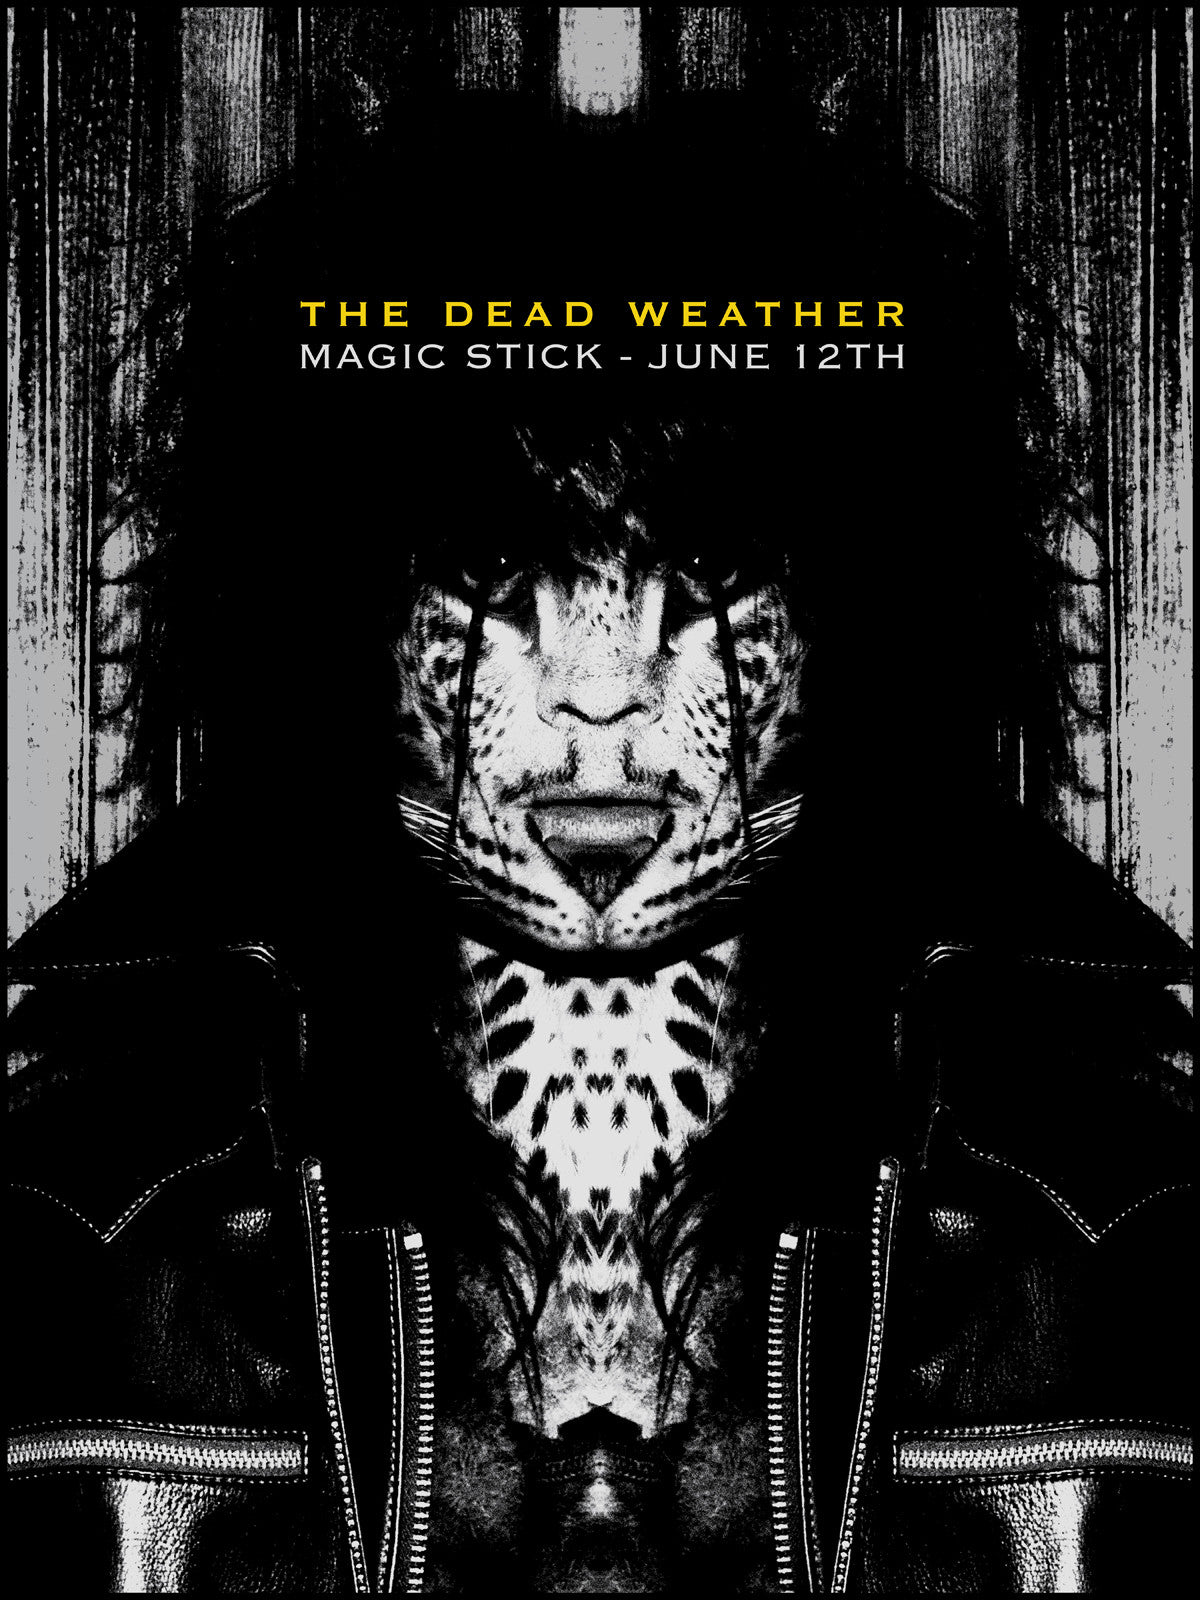 The Dead Weather Detroit 2009 (Magic Stick)